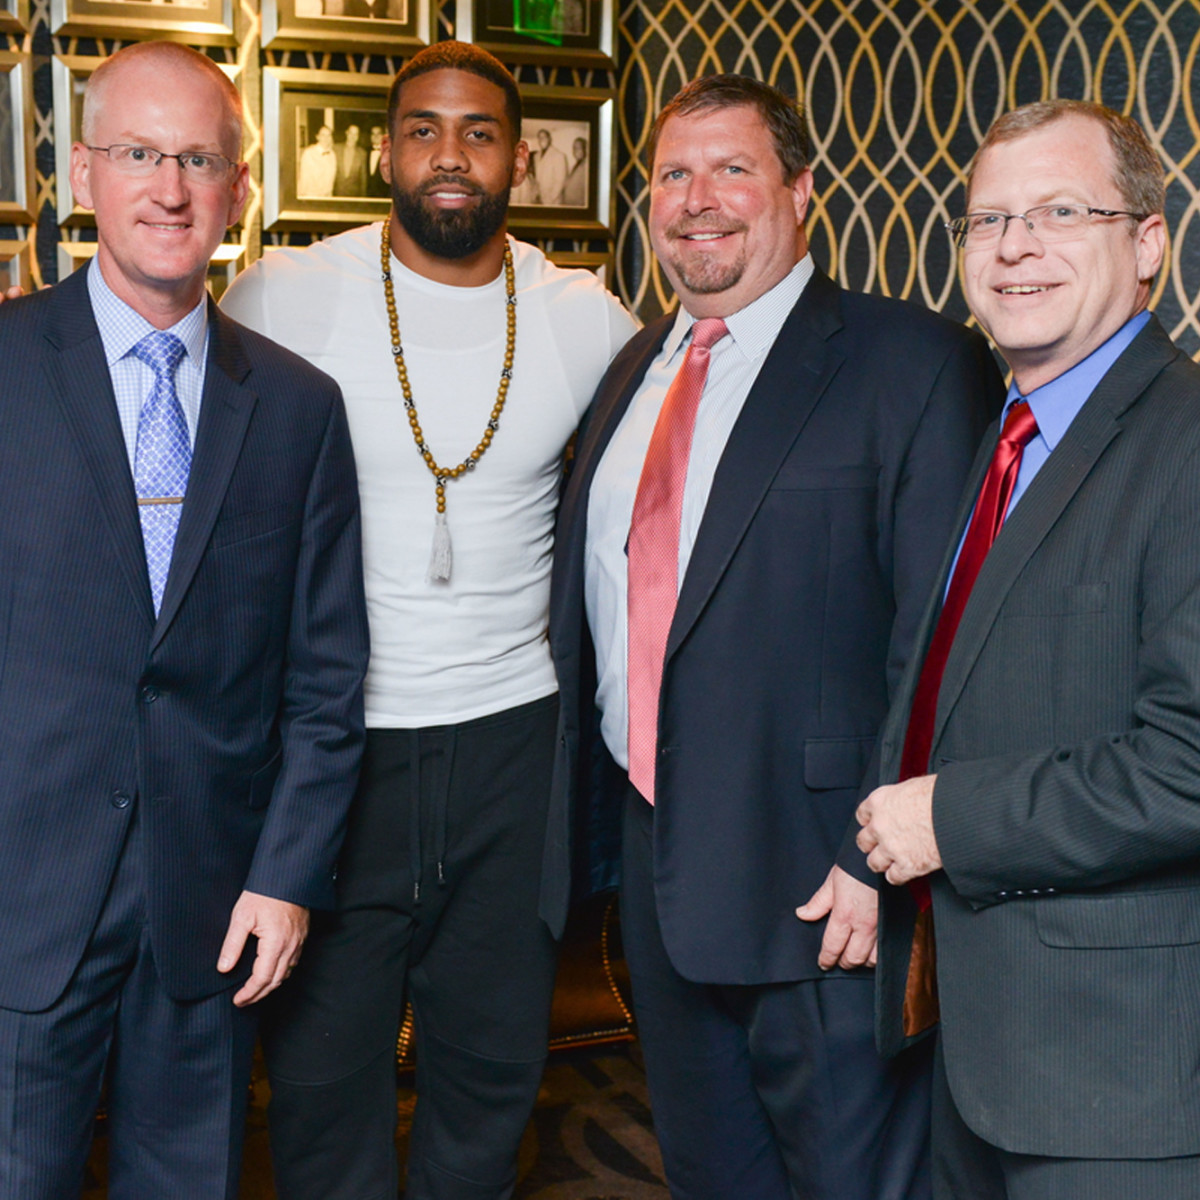 Arian Foster charity dinner Morton's Morton's The Steakhouse Executives Scott Crain, Tom Kohler, GM Eric Kresse with Arian Foster